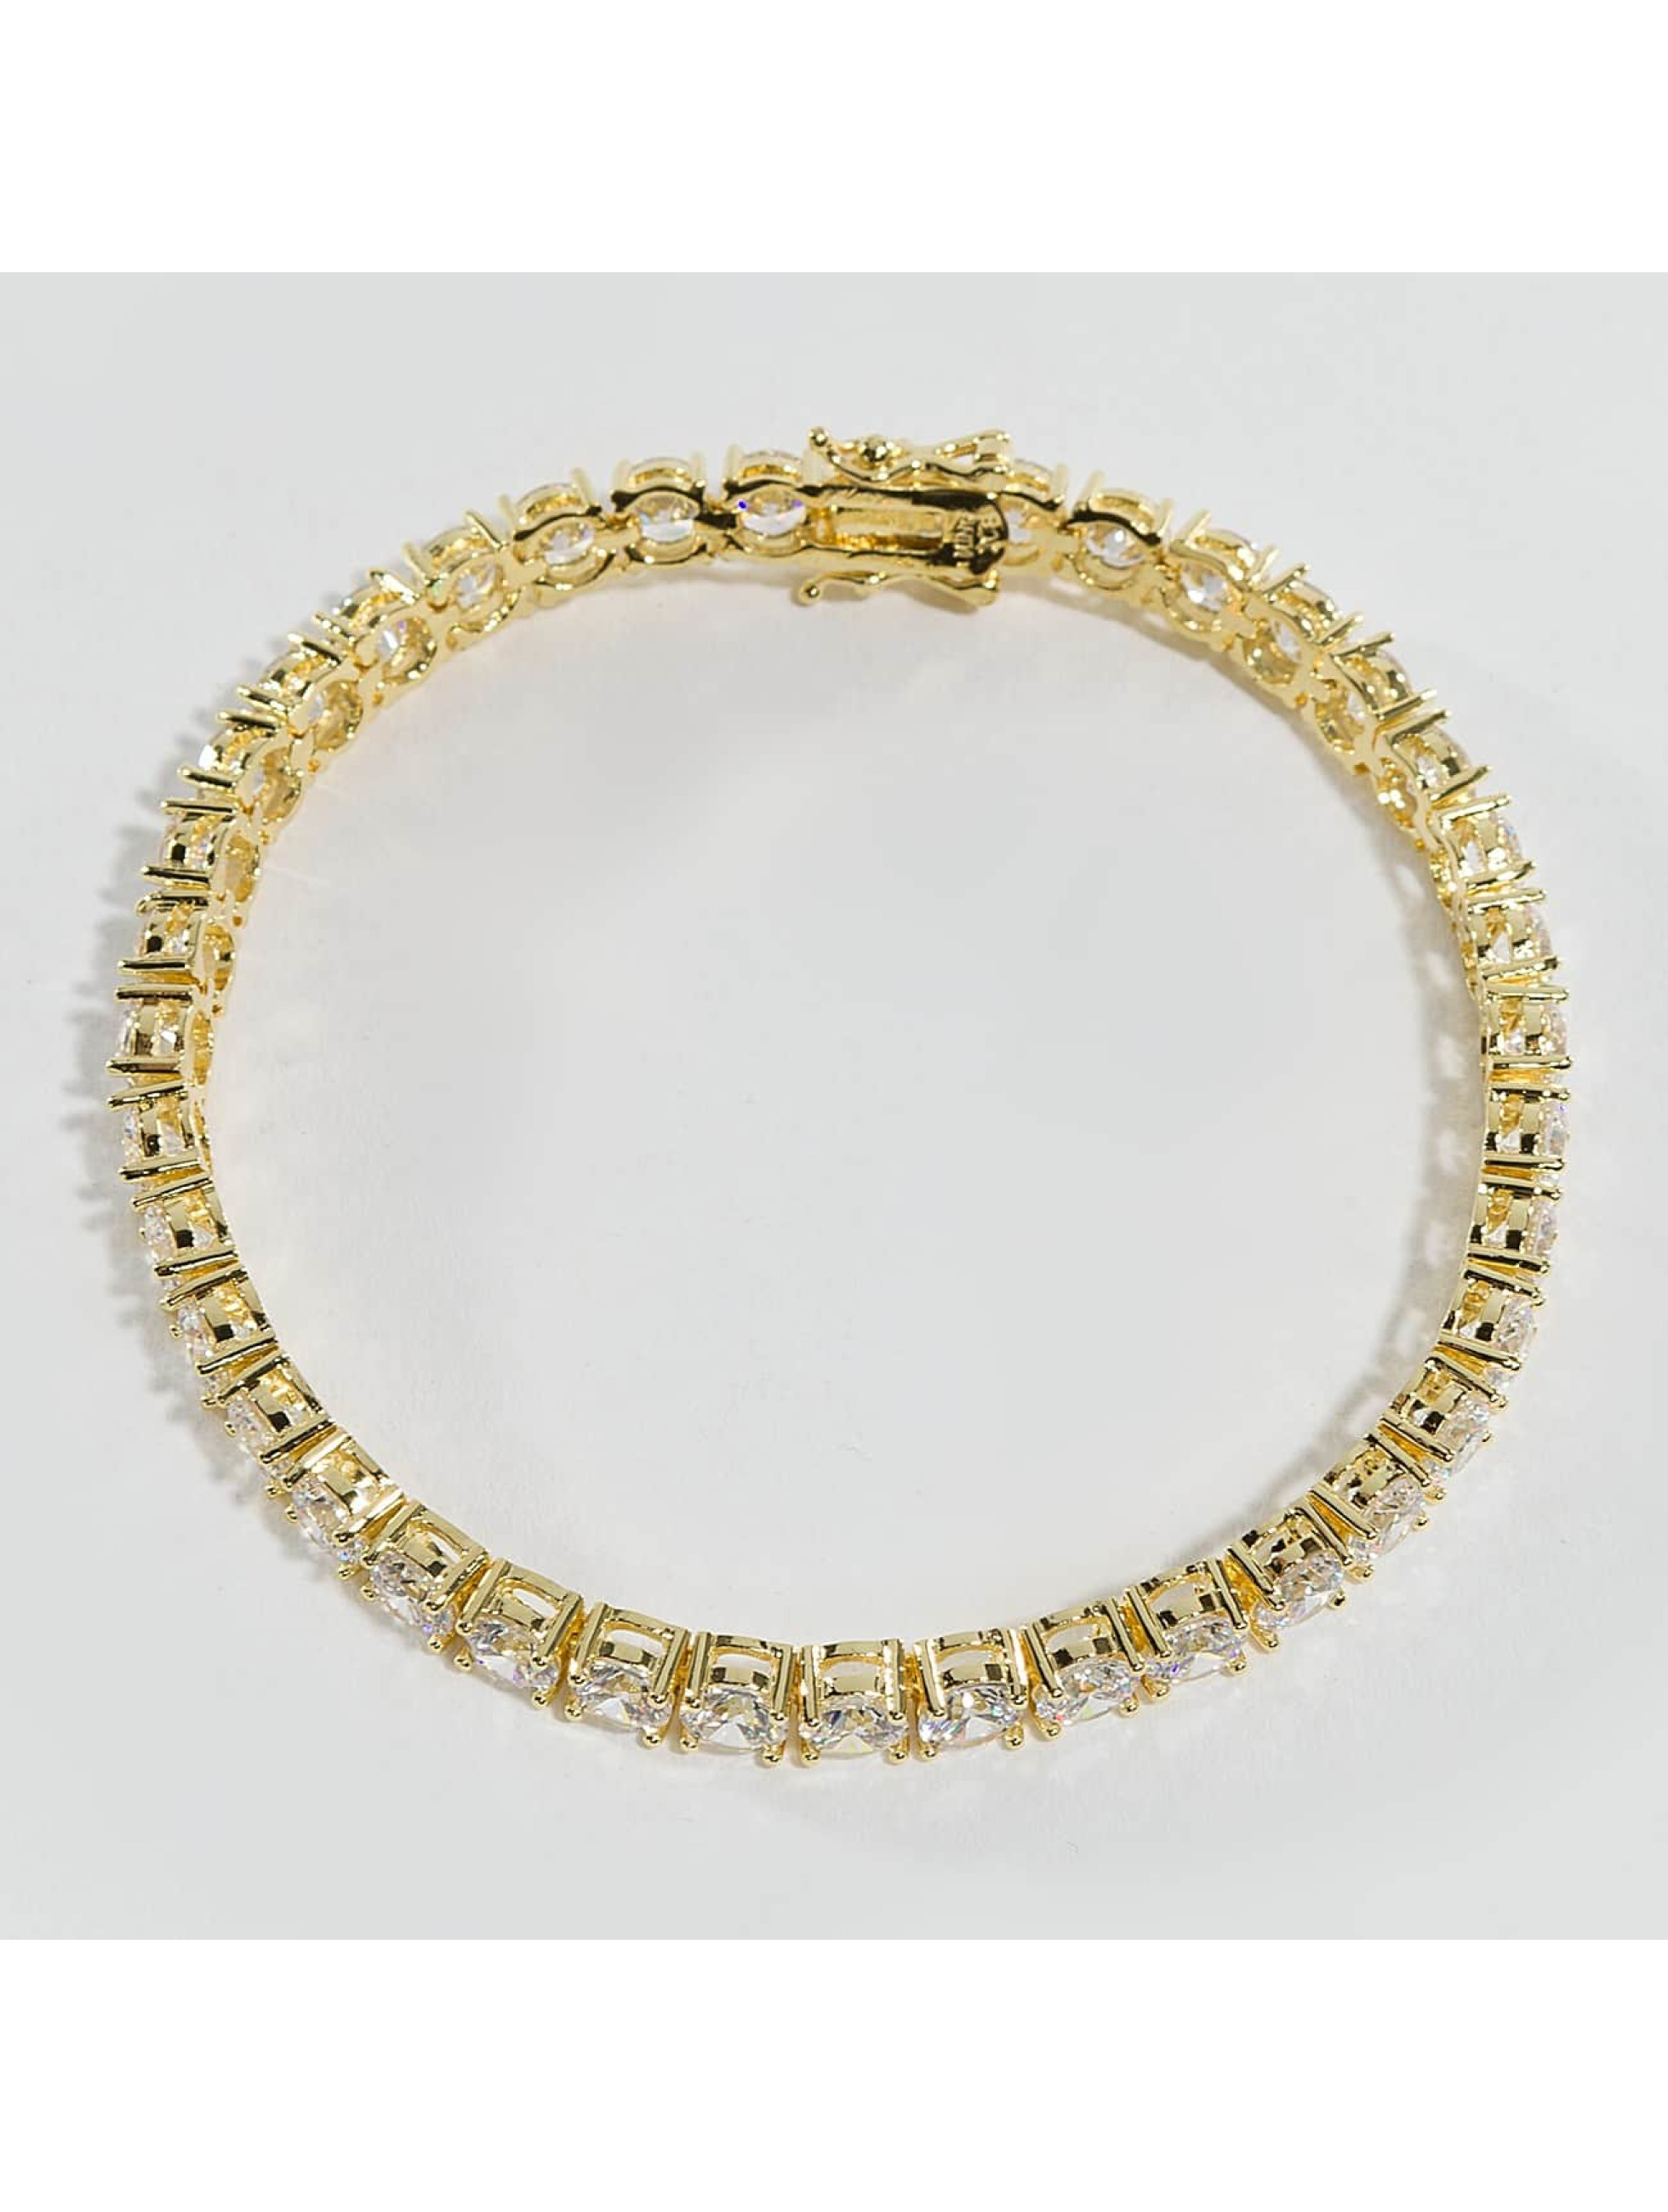 KING ICE Bracelet Gold_Plated 5mm Single Row gold